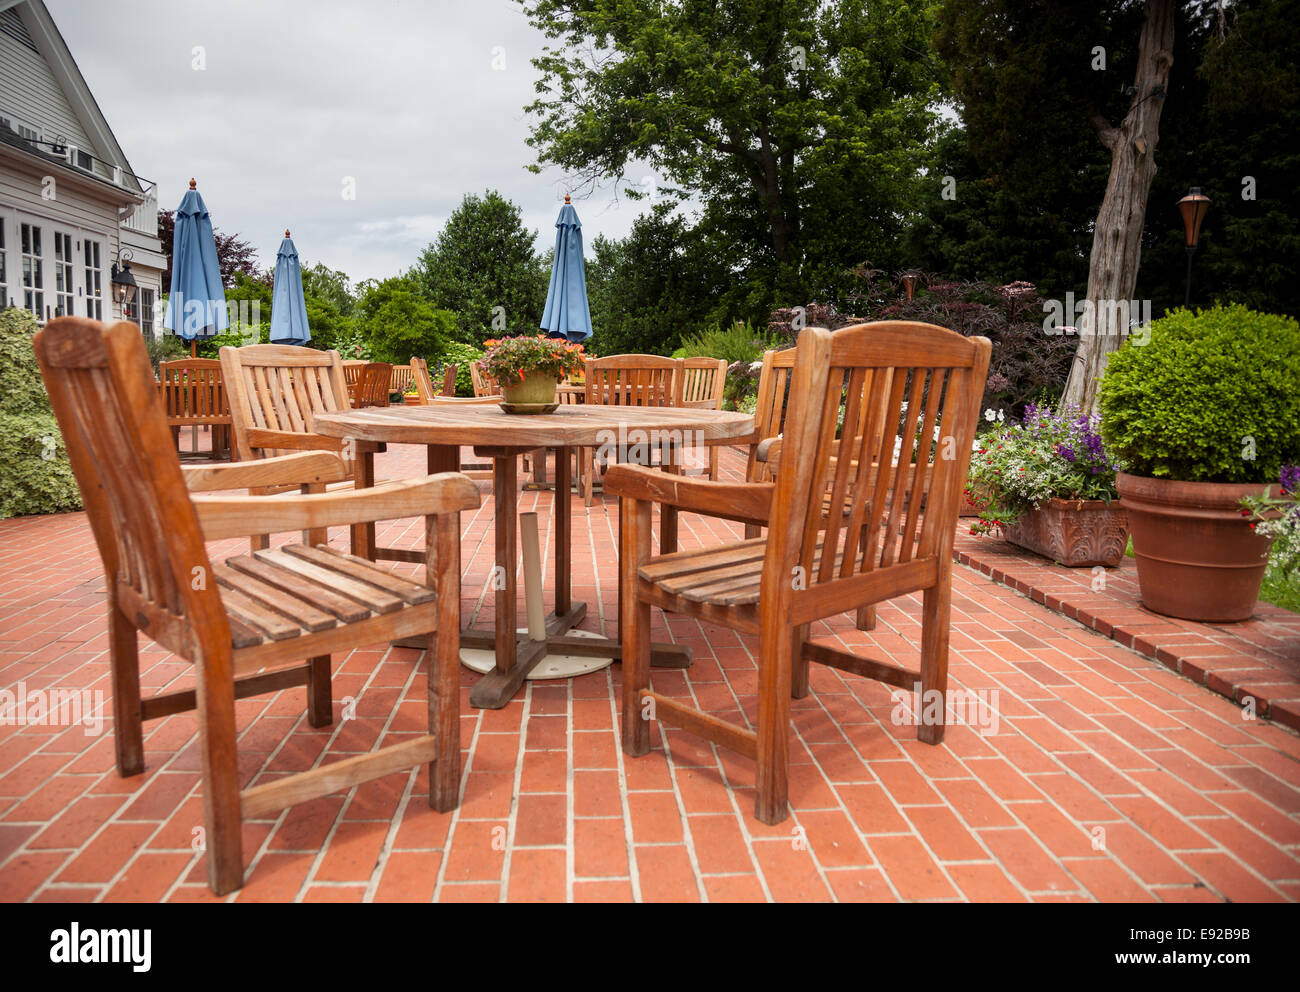 Teak Patio Tables And Chairs On Brick Deck Stock Photo Alamy